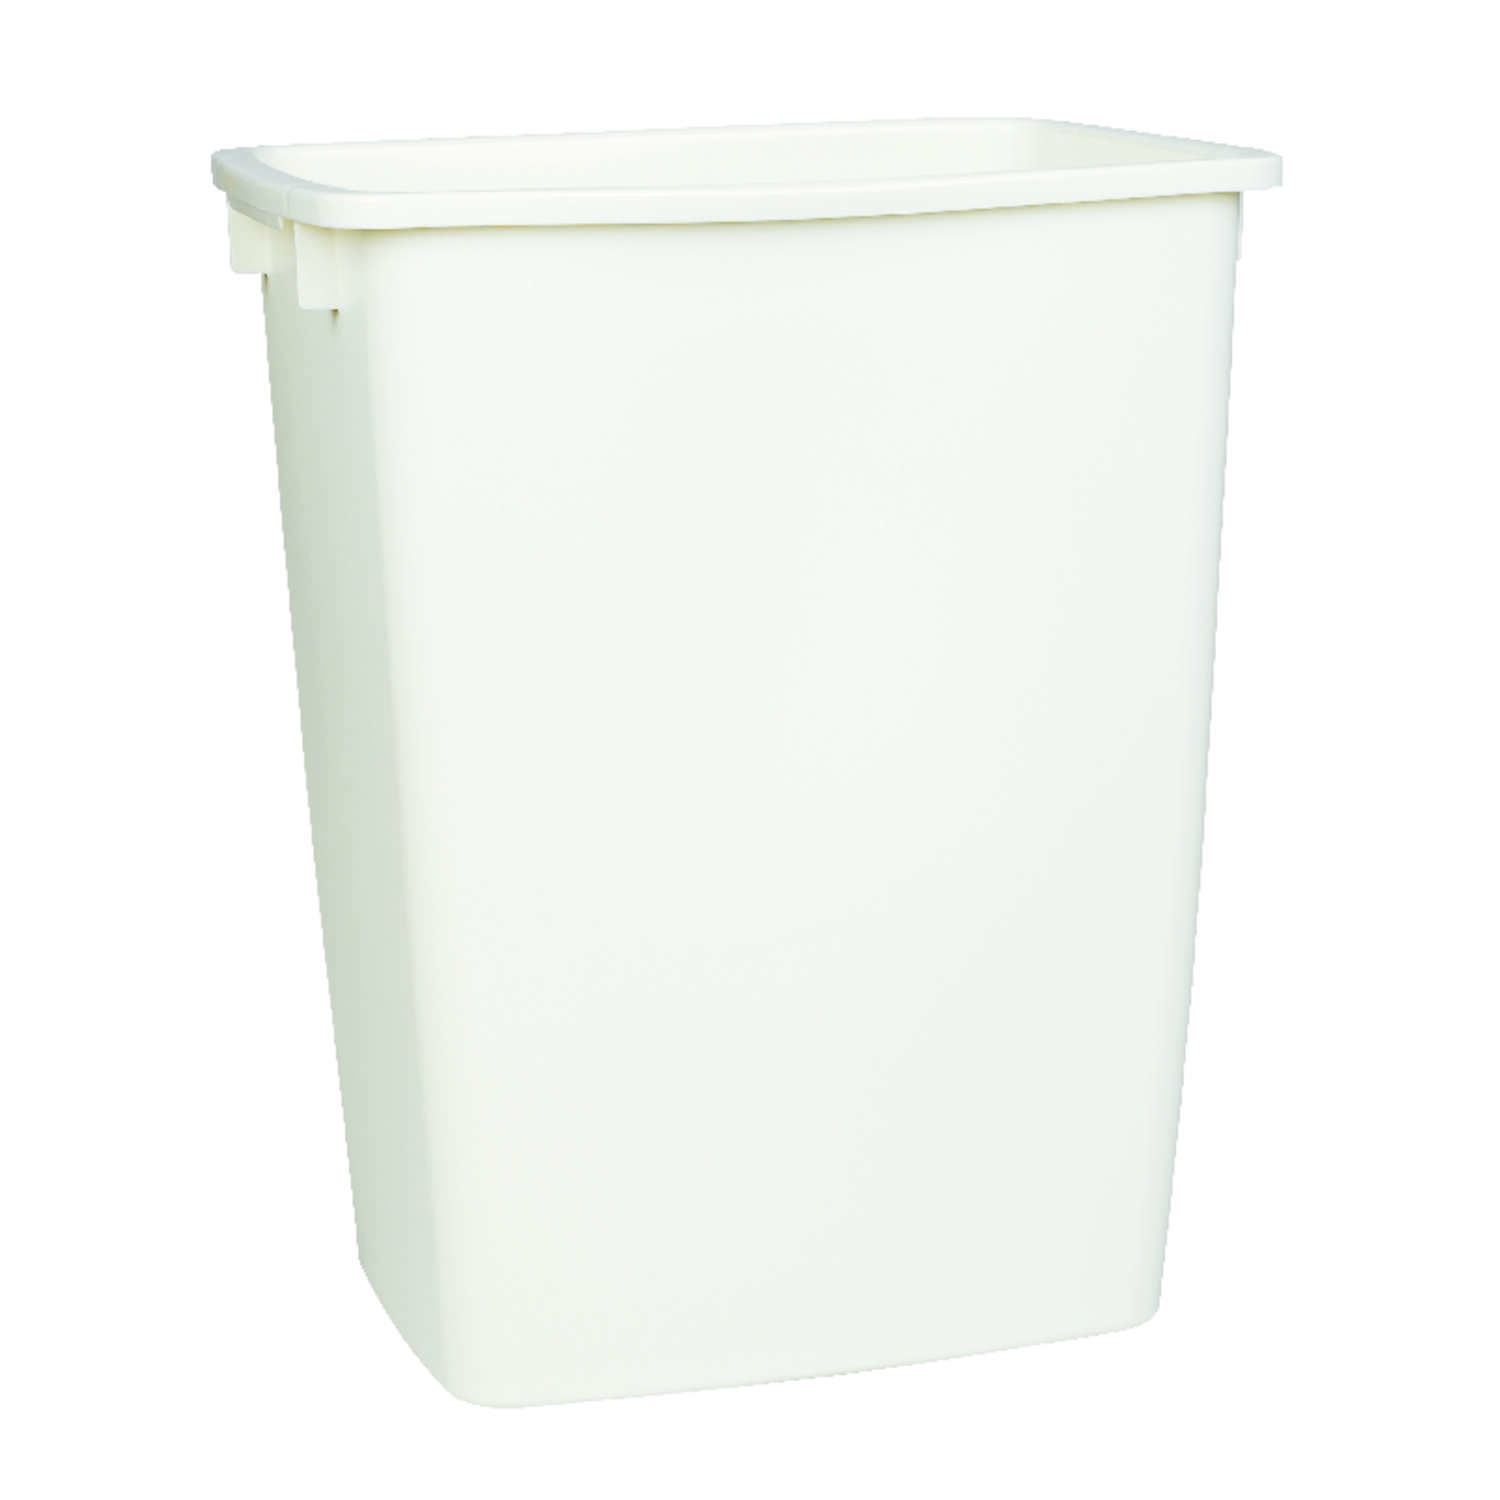 Rubbermaid 9 gal. Bisque Plastic Open Top Trash Can